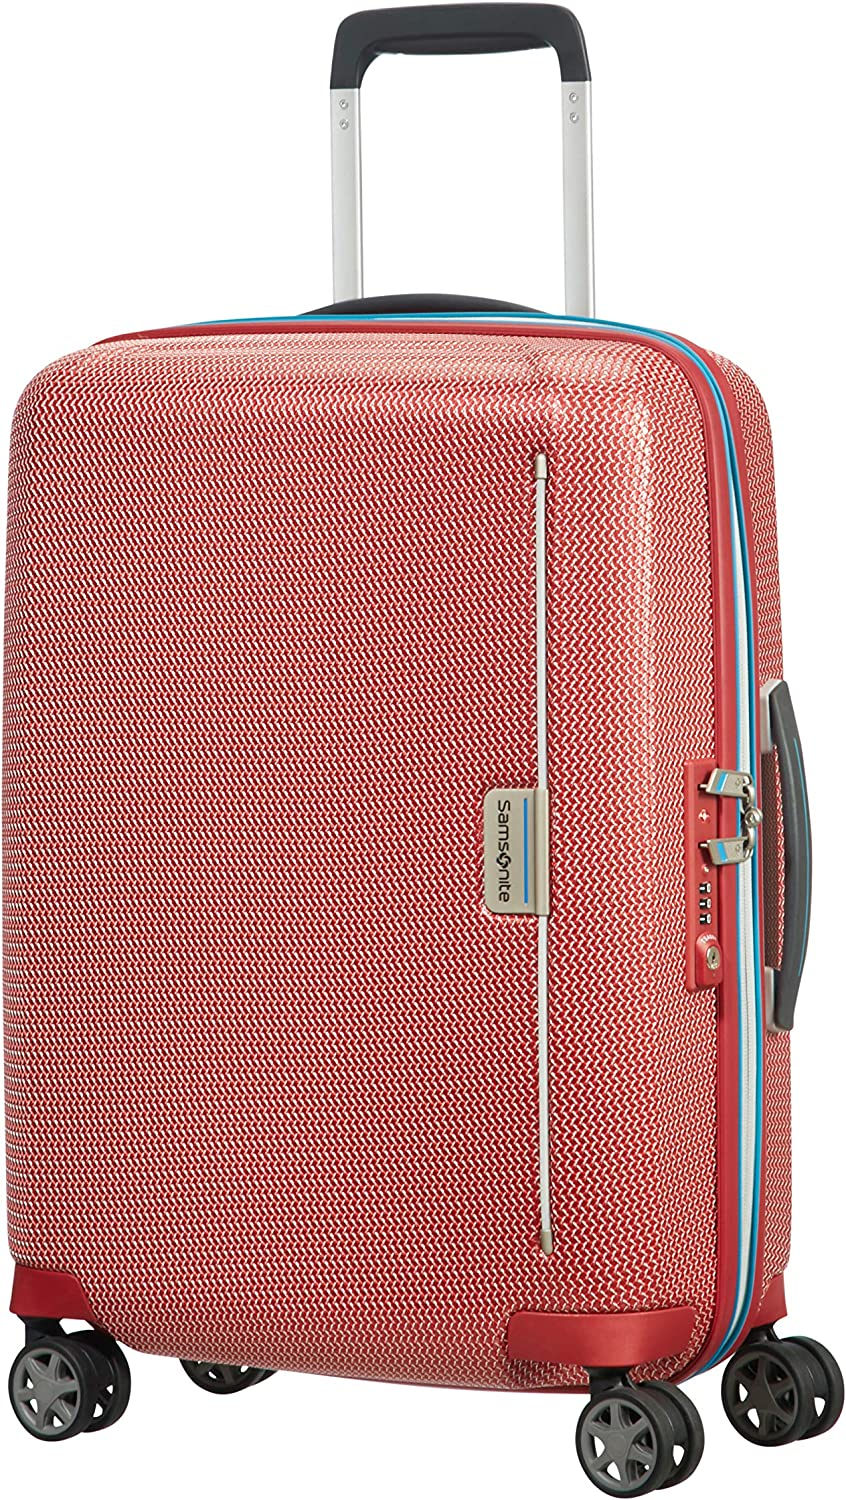 Samsonite Mixmesh - Spinner Maleta, Red/Pacific Blue (Rojo) - 106745/7085